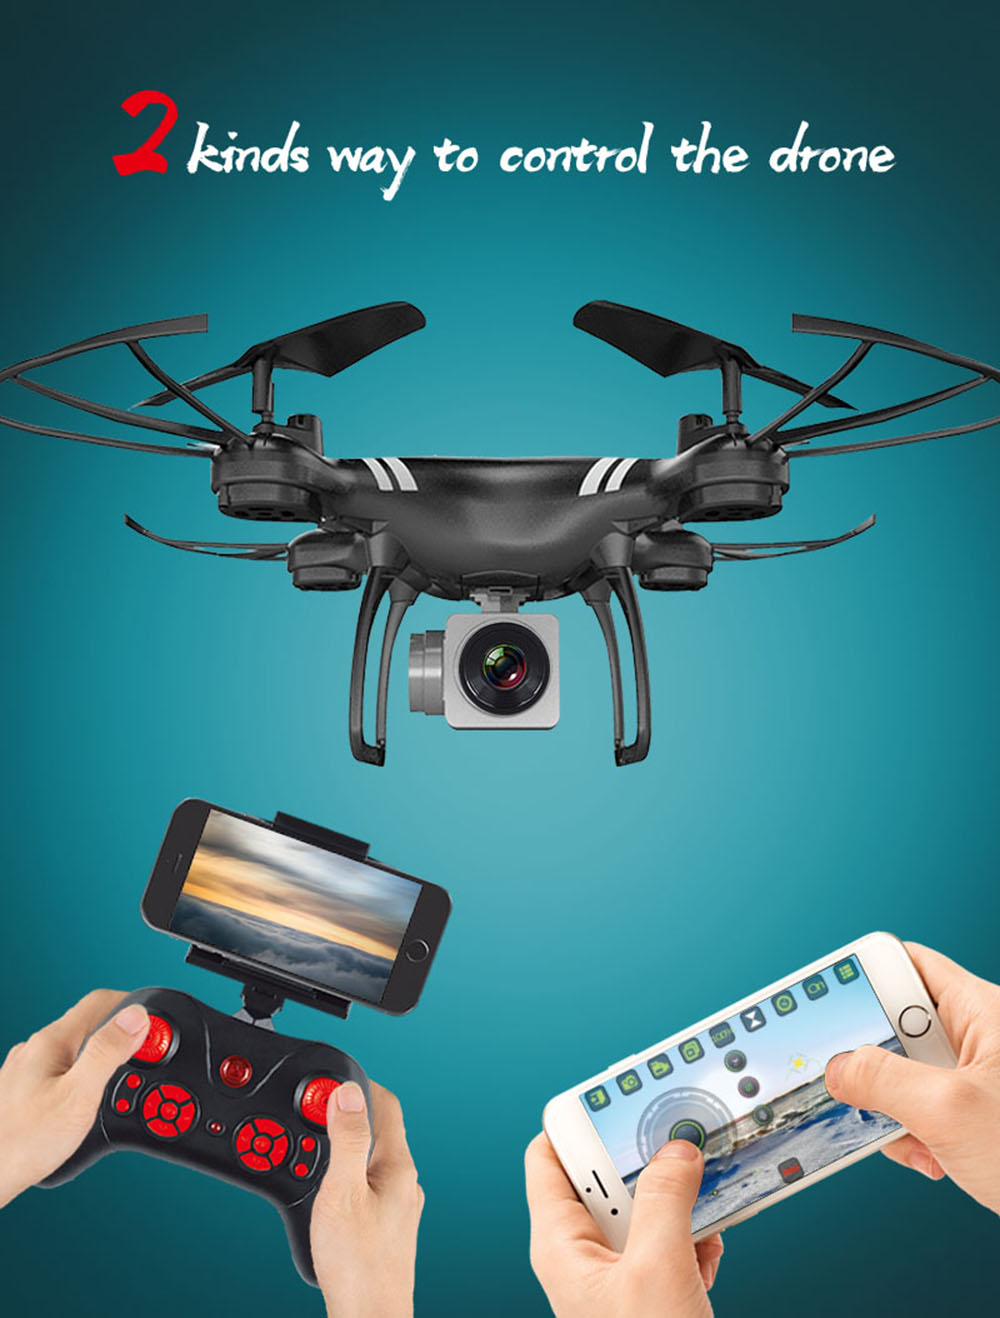 KY101 RC Drone Toy Aerial Photography Quadcopter Fixed High WiFi Real-time Image Transmission Remote Control Aircraft - Black 720P One Battery